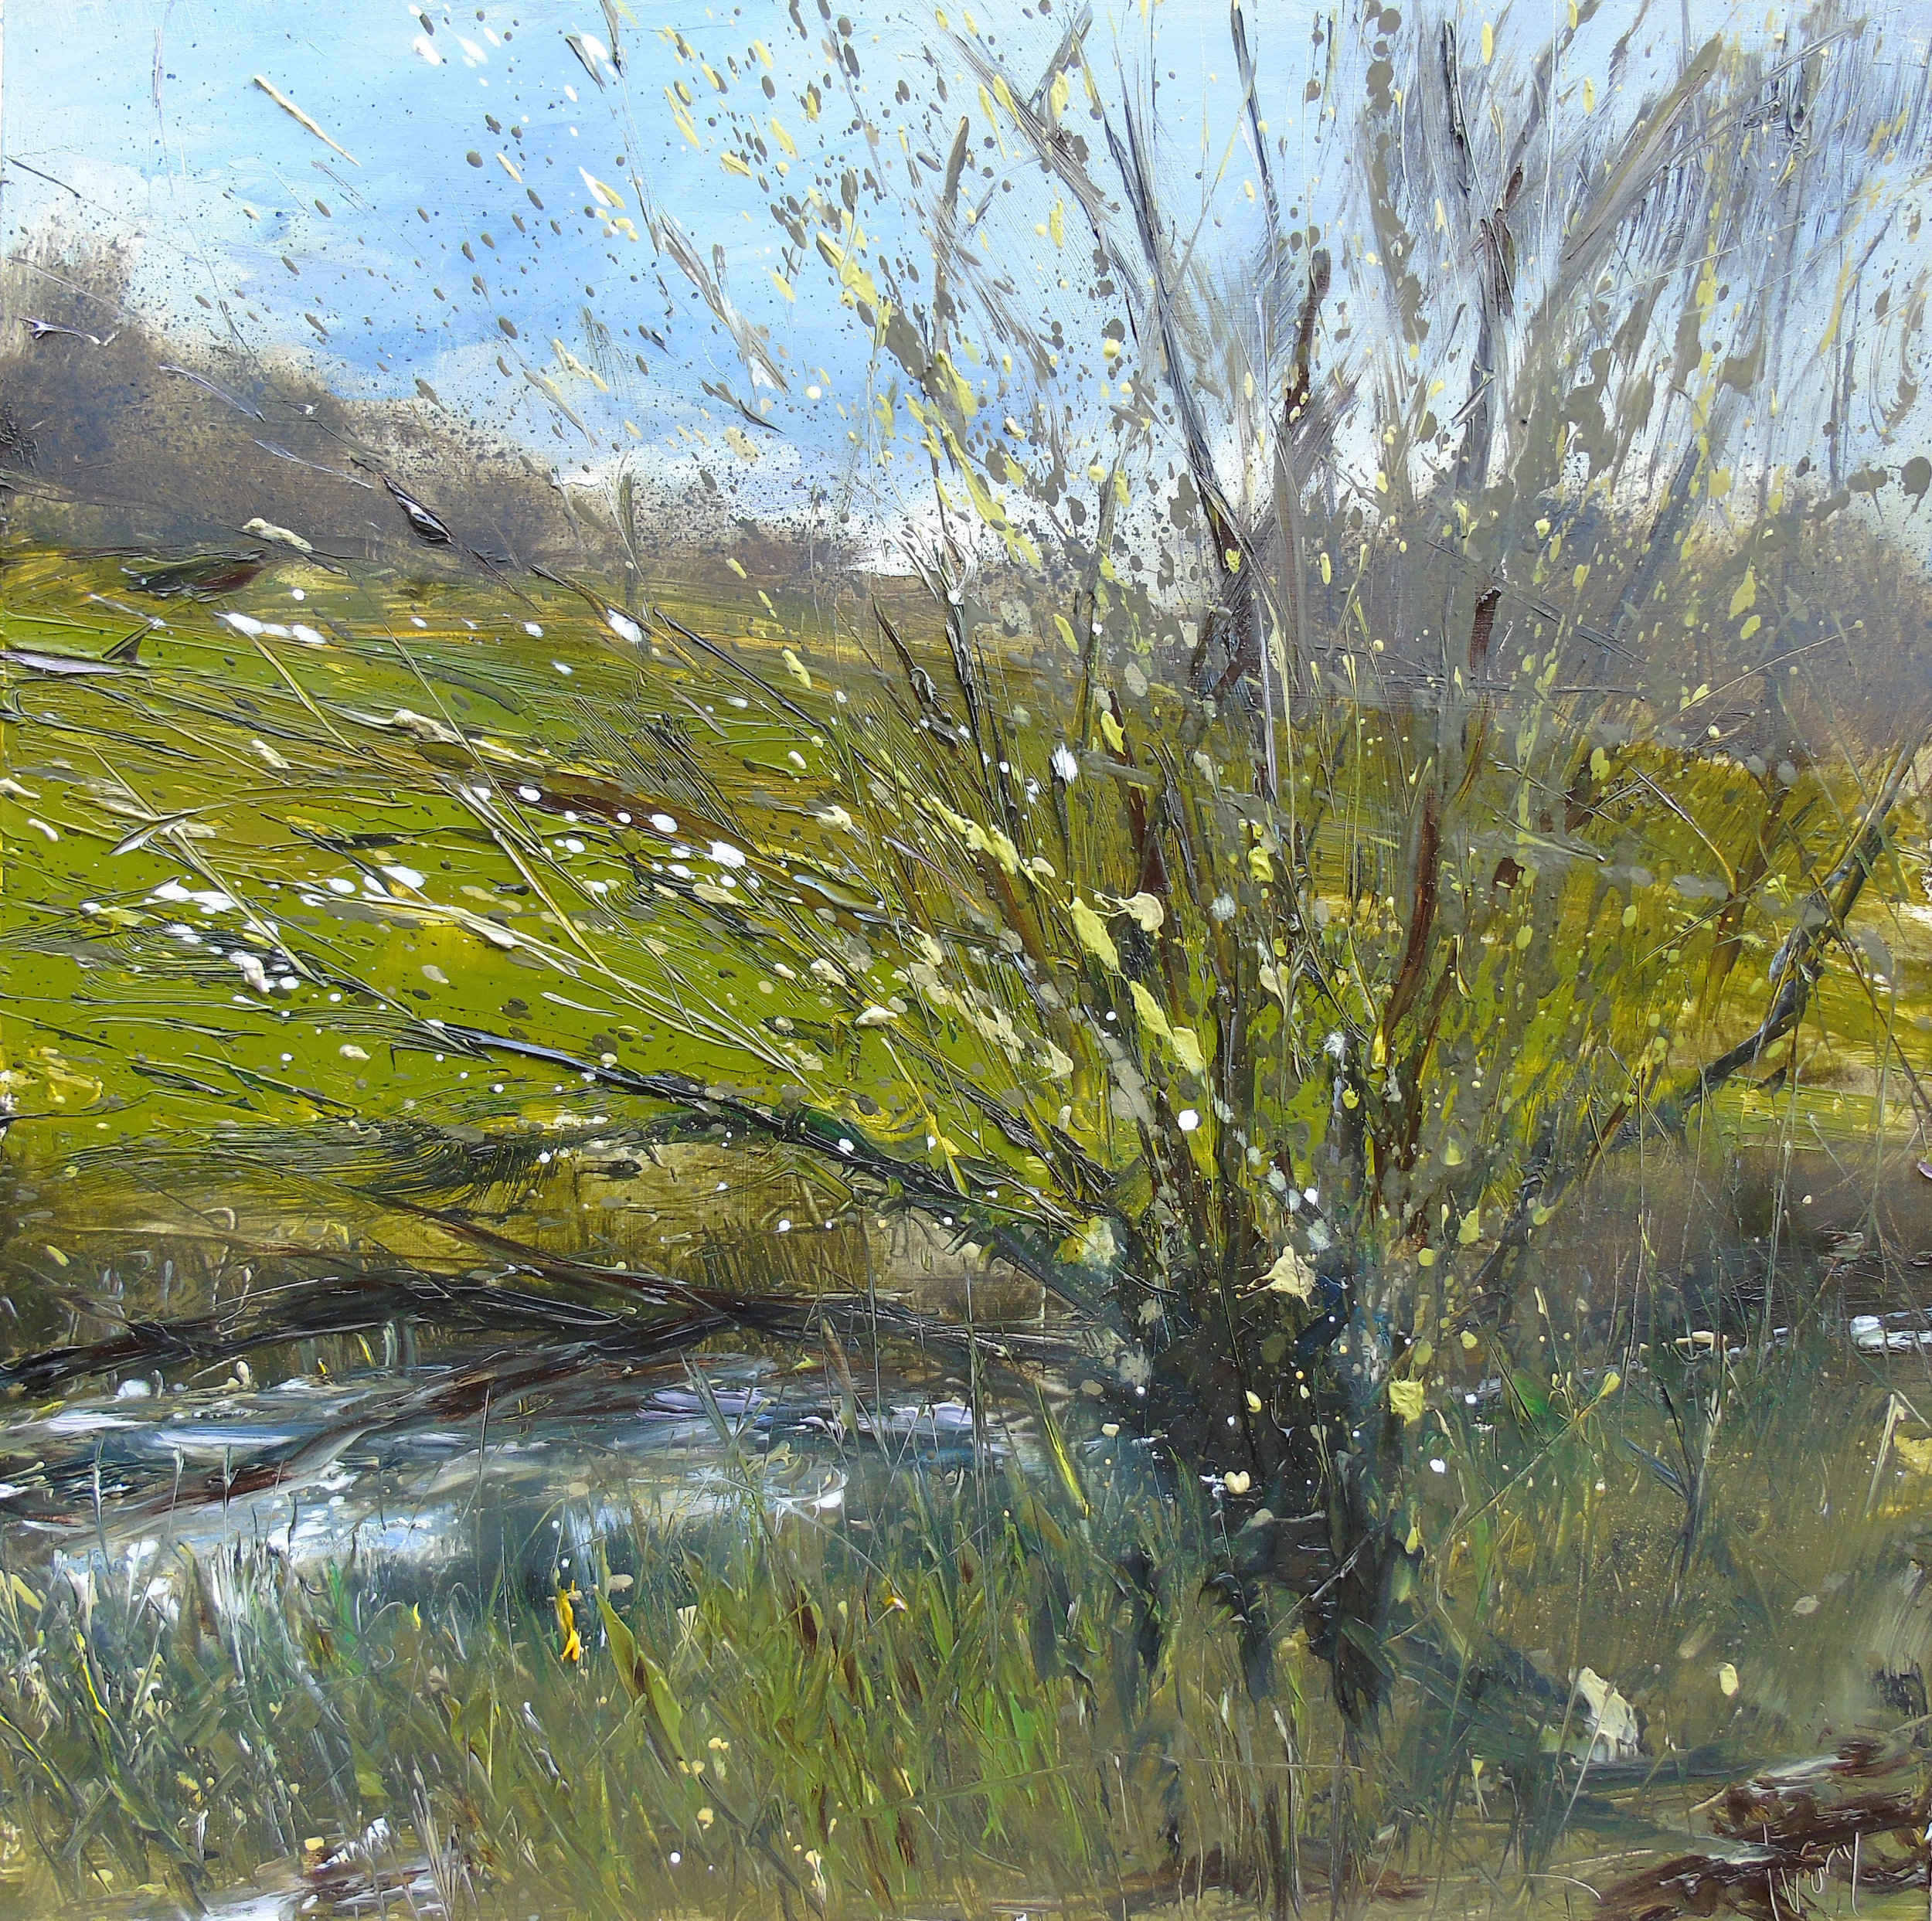 Sapling by the river Parrett, Somerset 40x40cm oil on wood panel.jpg